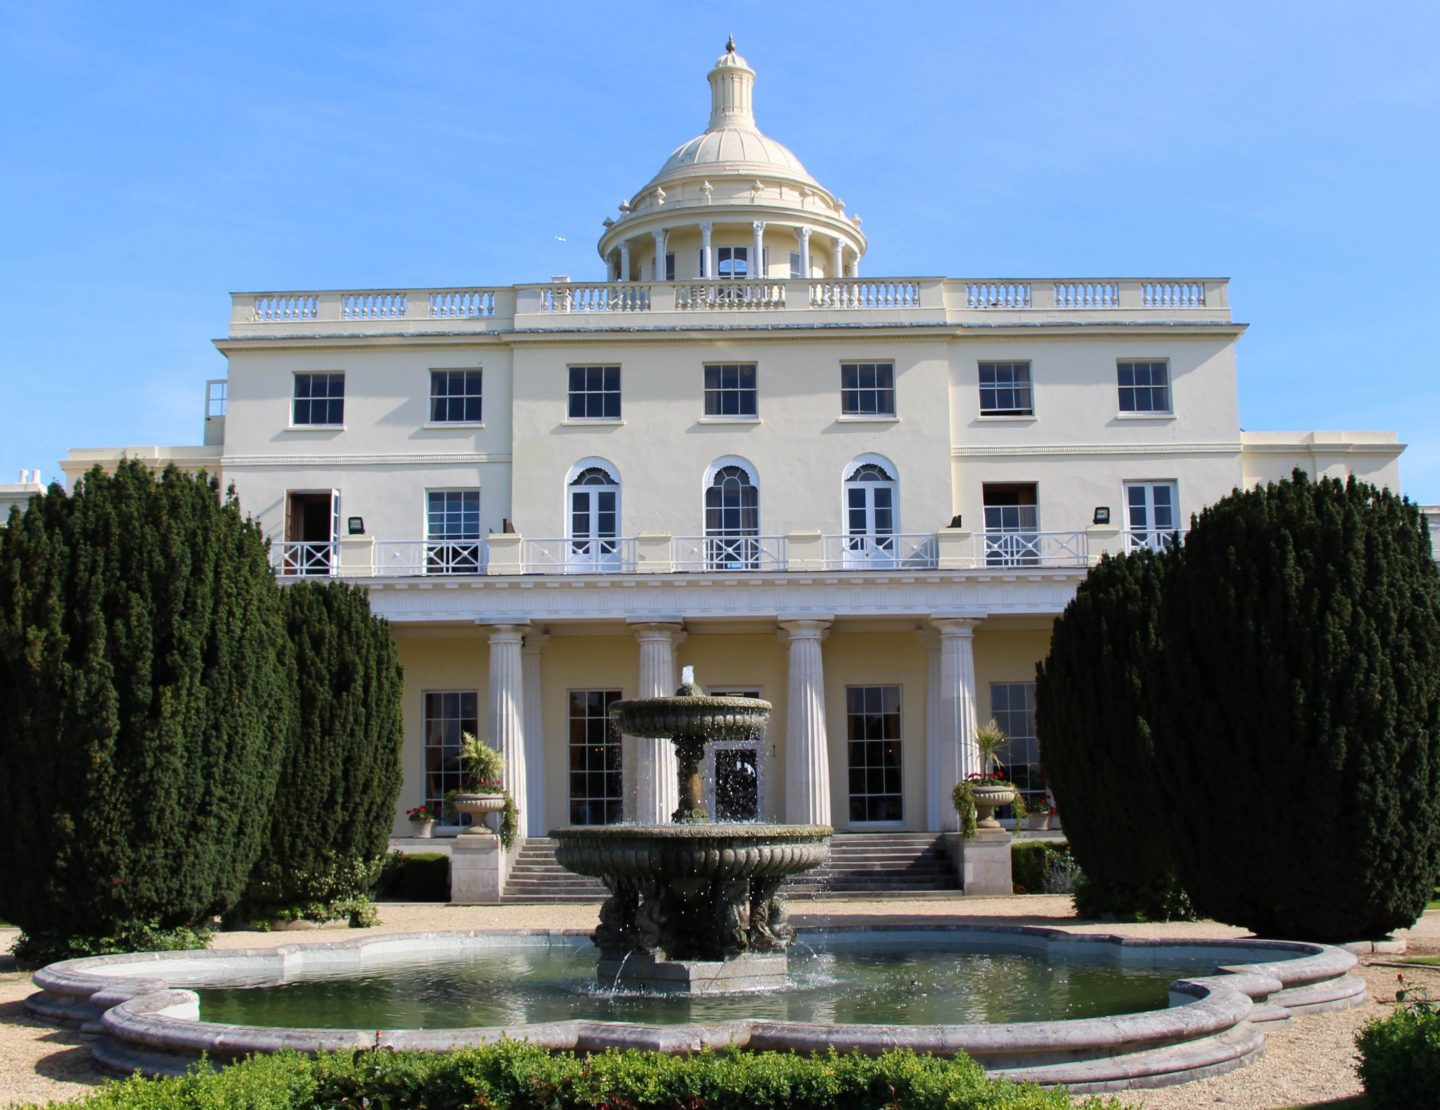 Stoke Park Hotel Mansion Building